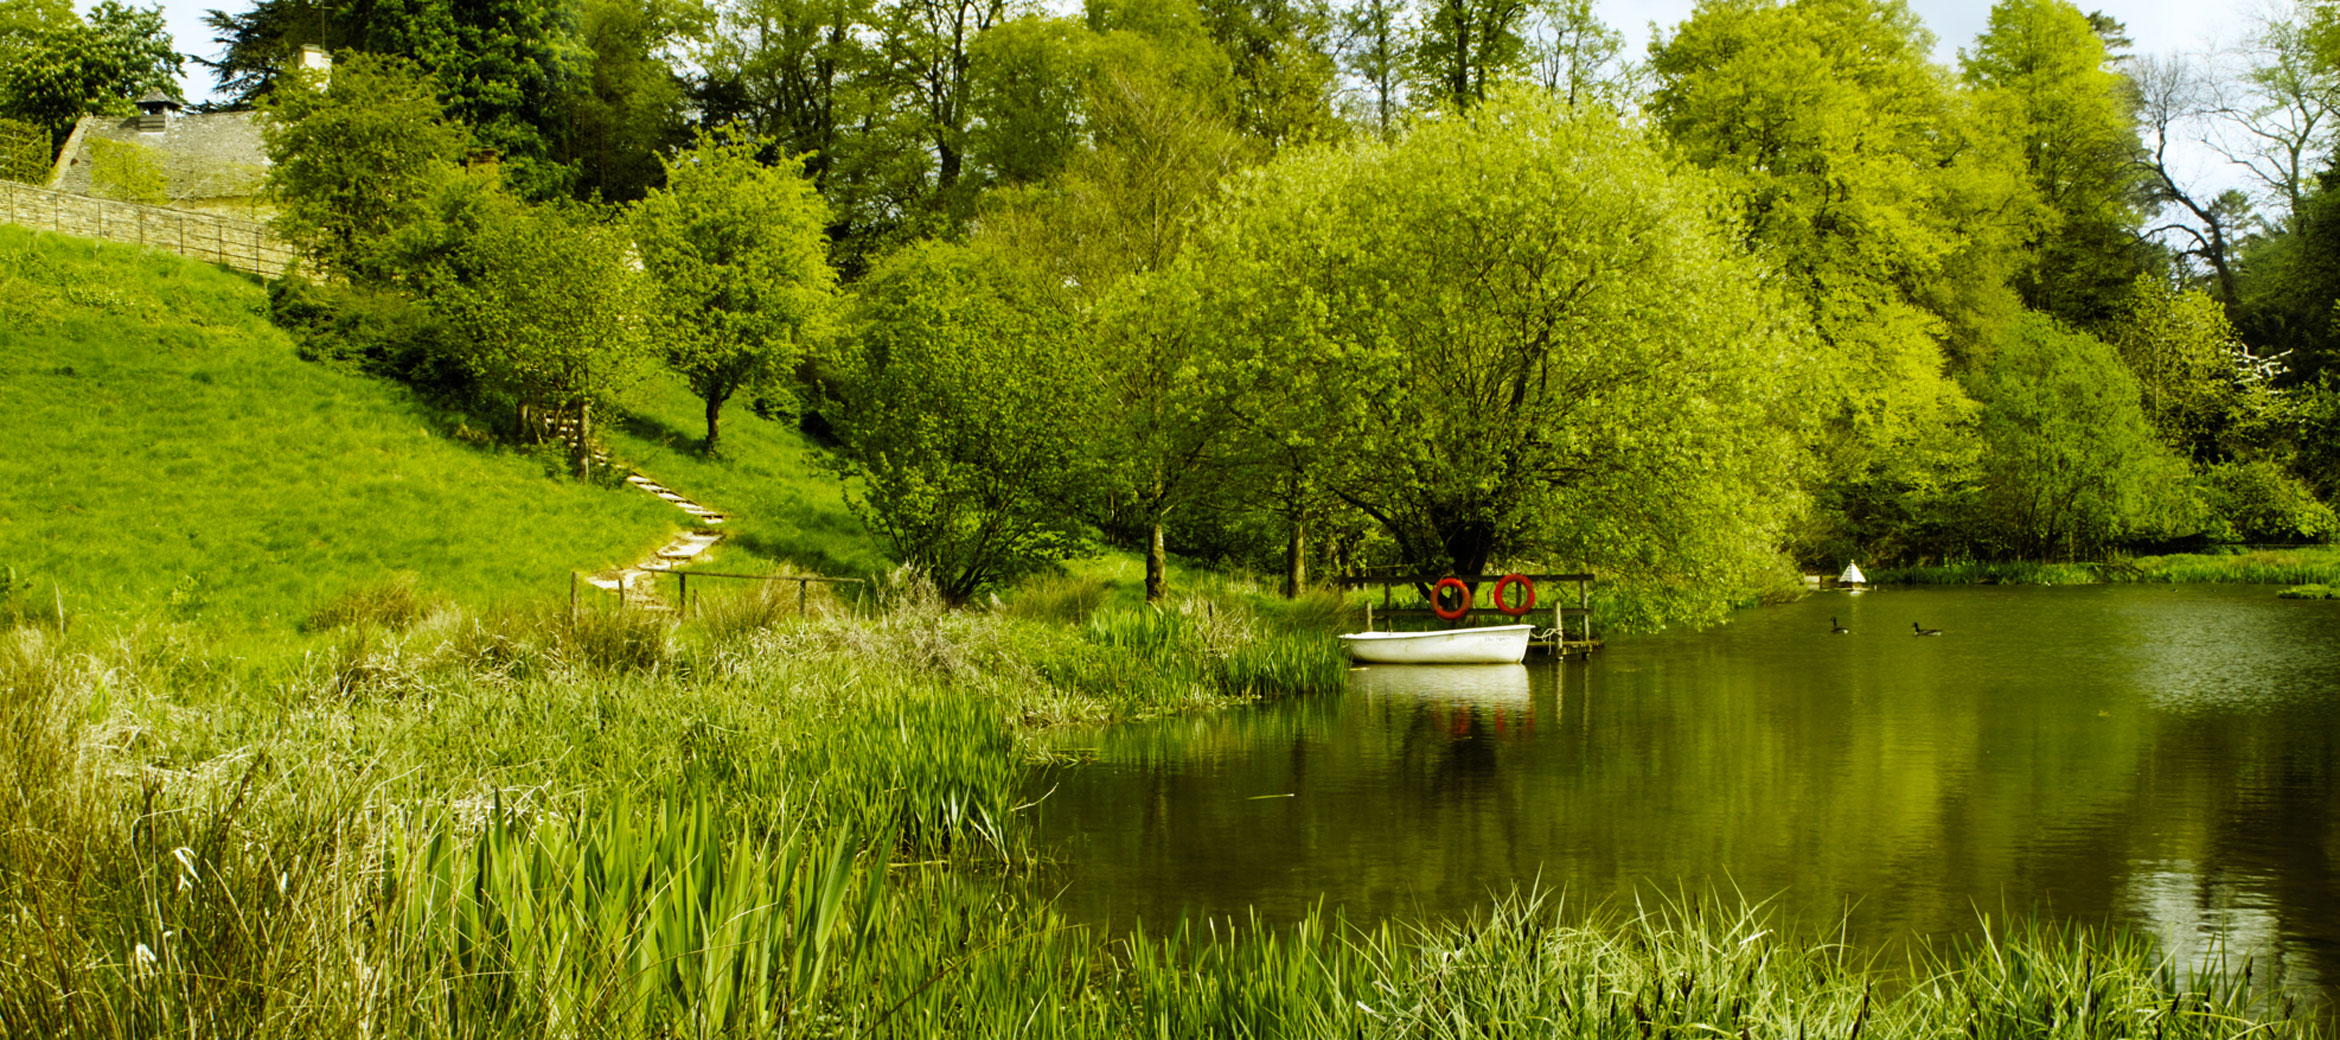 Temple-Guiting-Manor-Boating-Lake